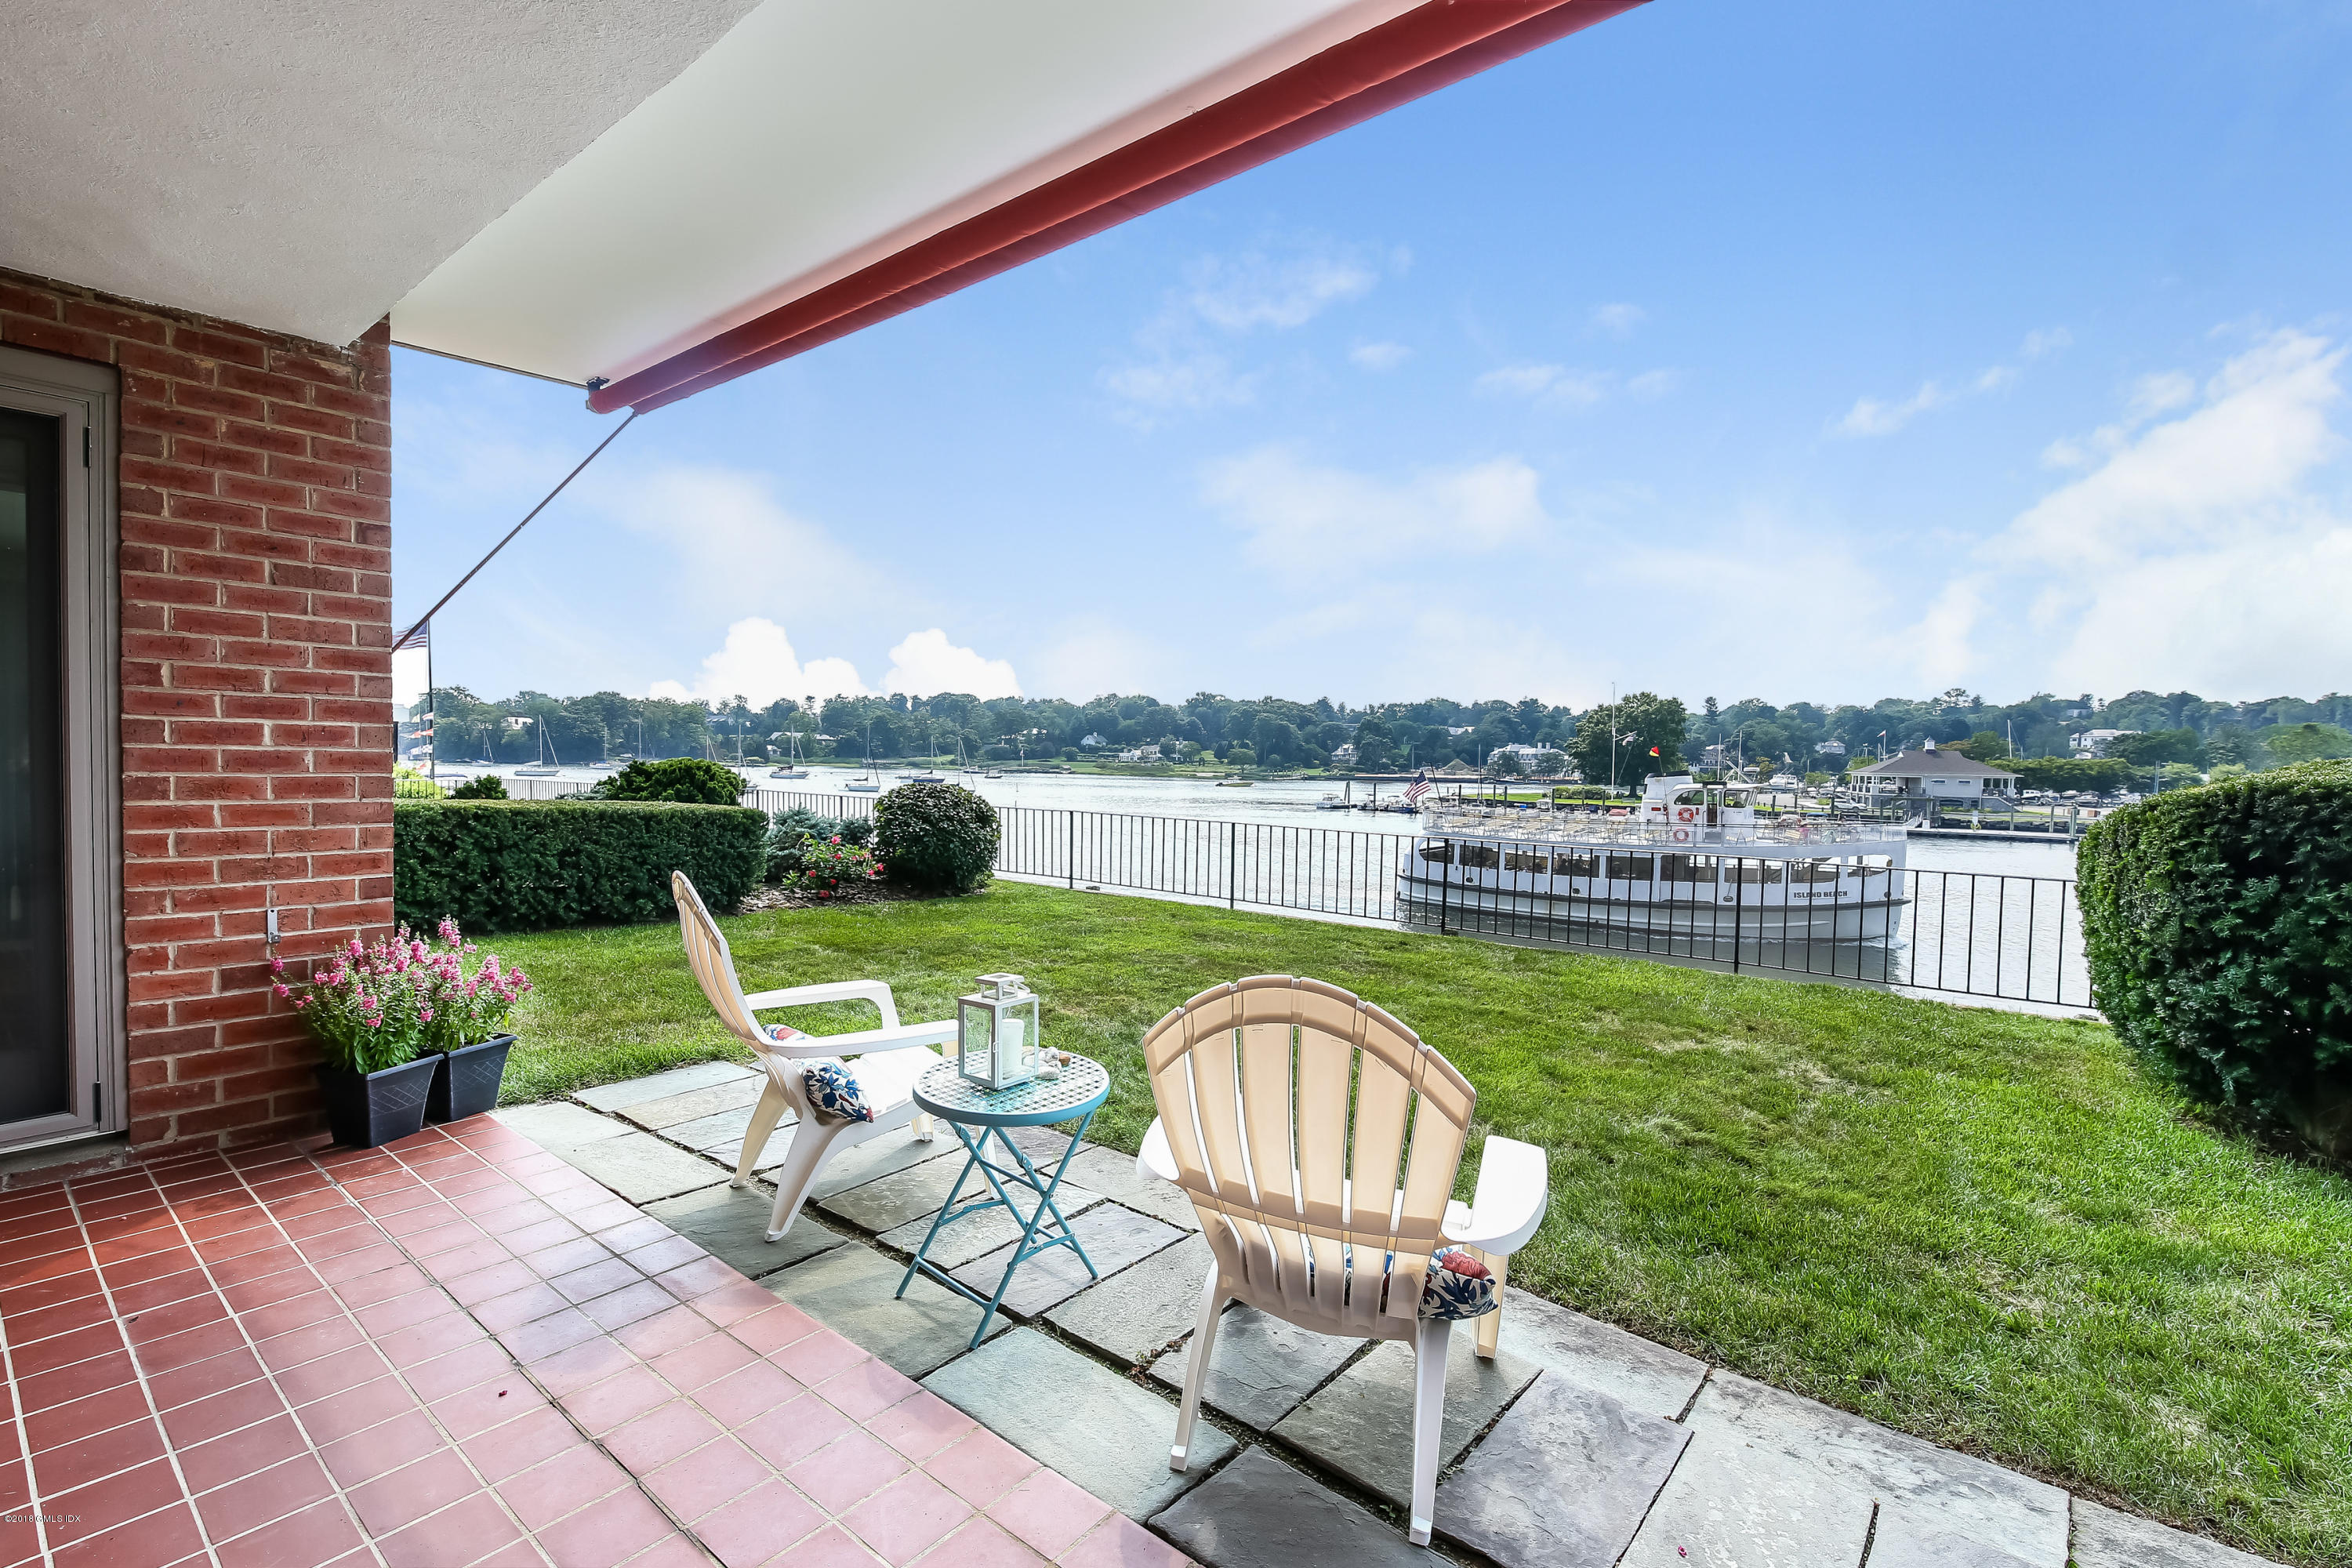 636 Steamboat Road,Greenwich,Connecticut 06830,2 Bedrooms Bedrooms,2 BathroomsBathrooms,Co-op,Steamboat,102204